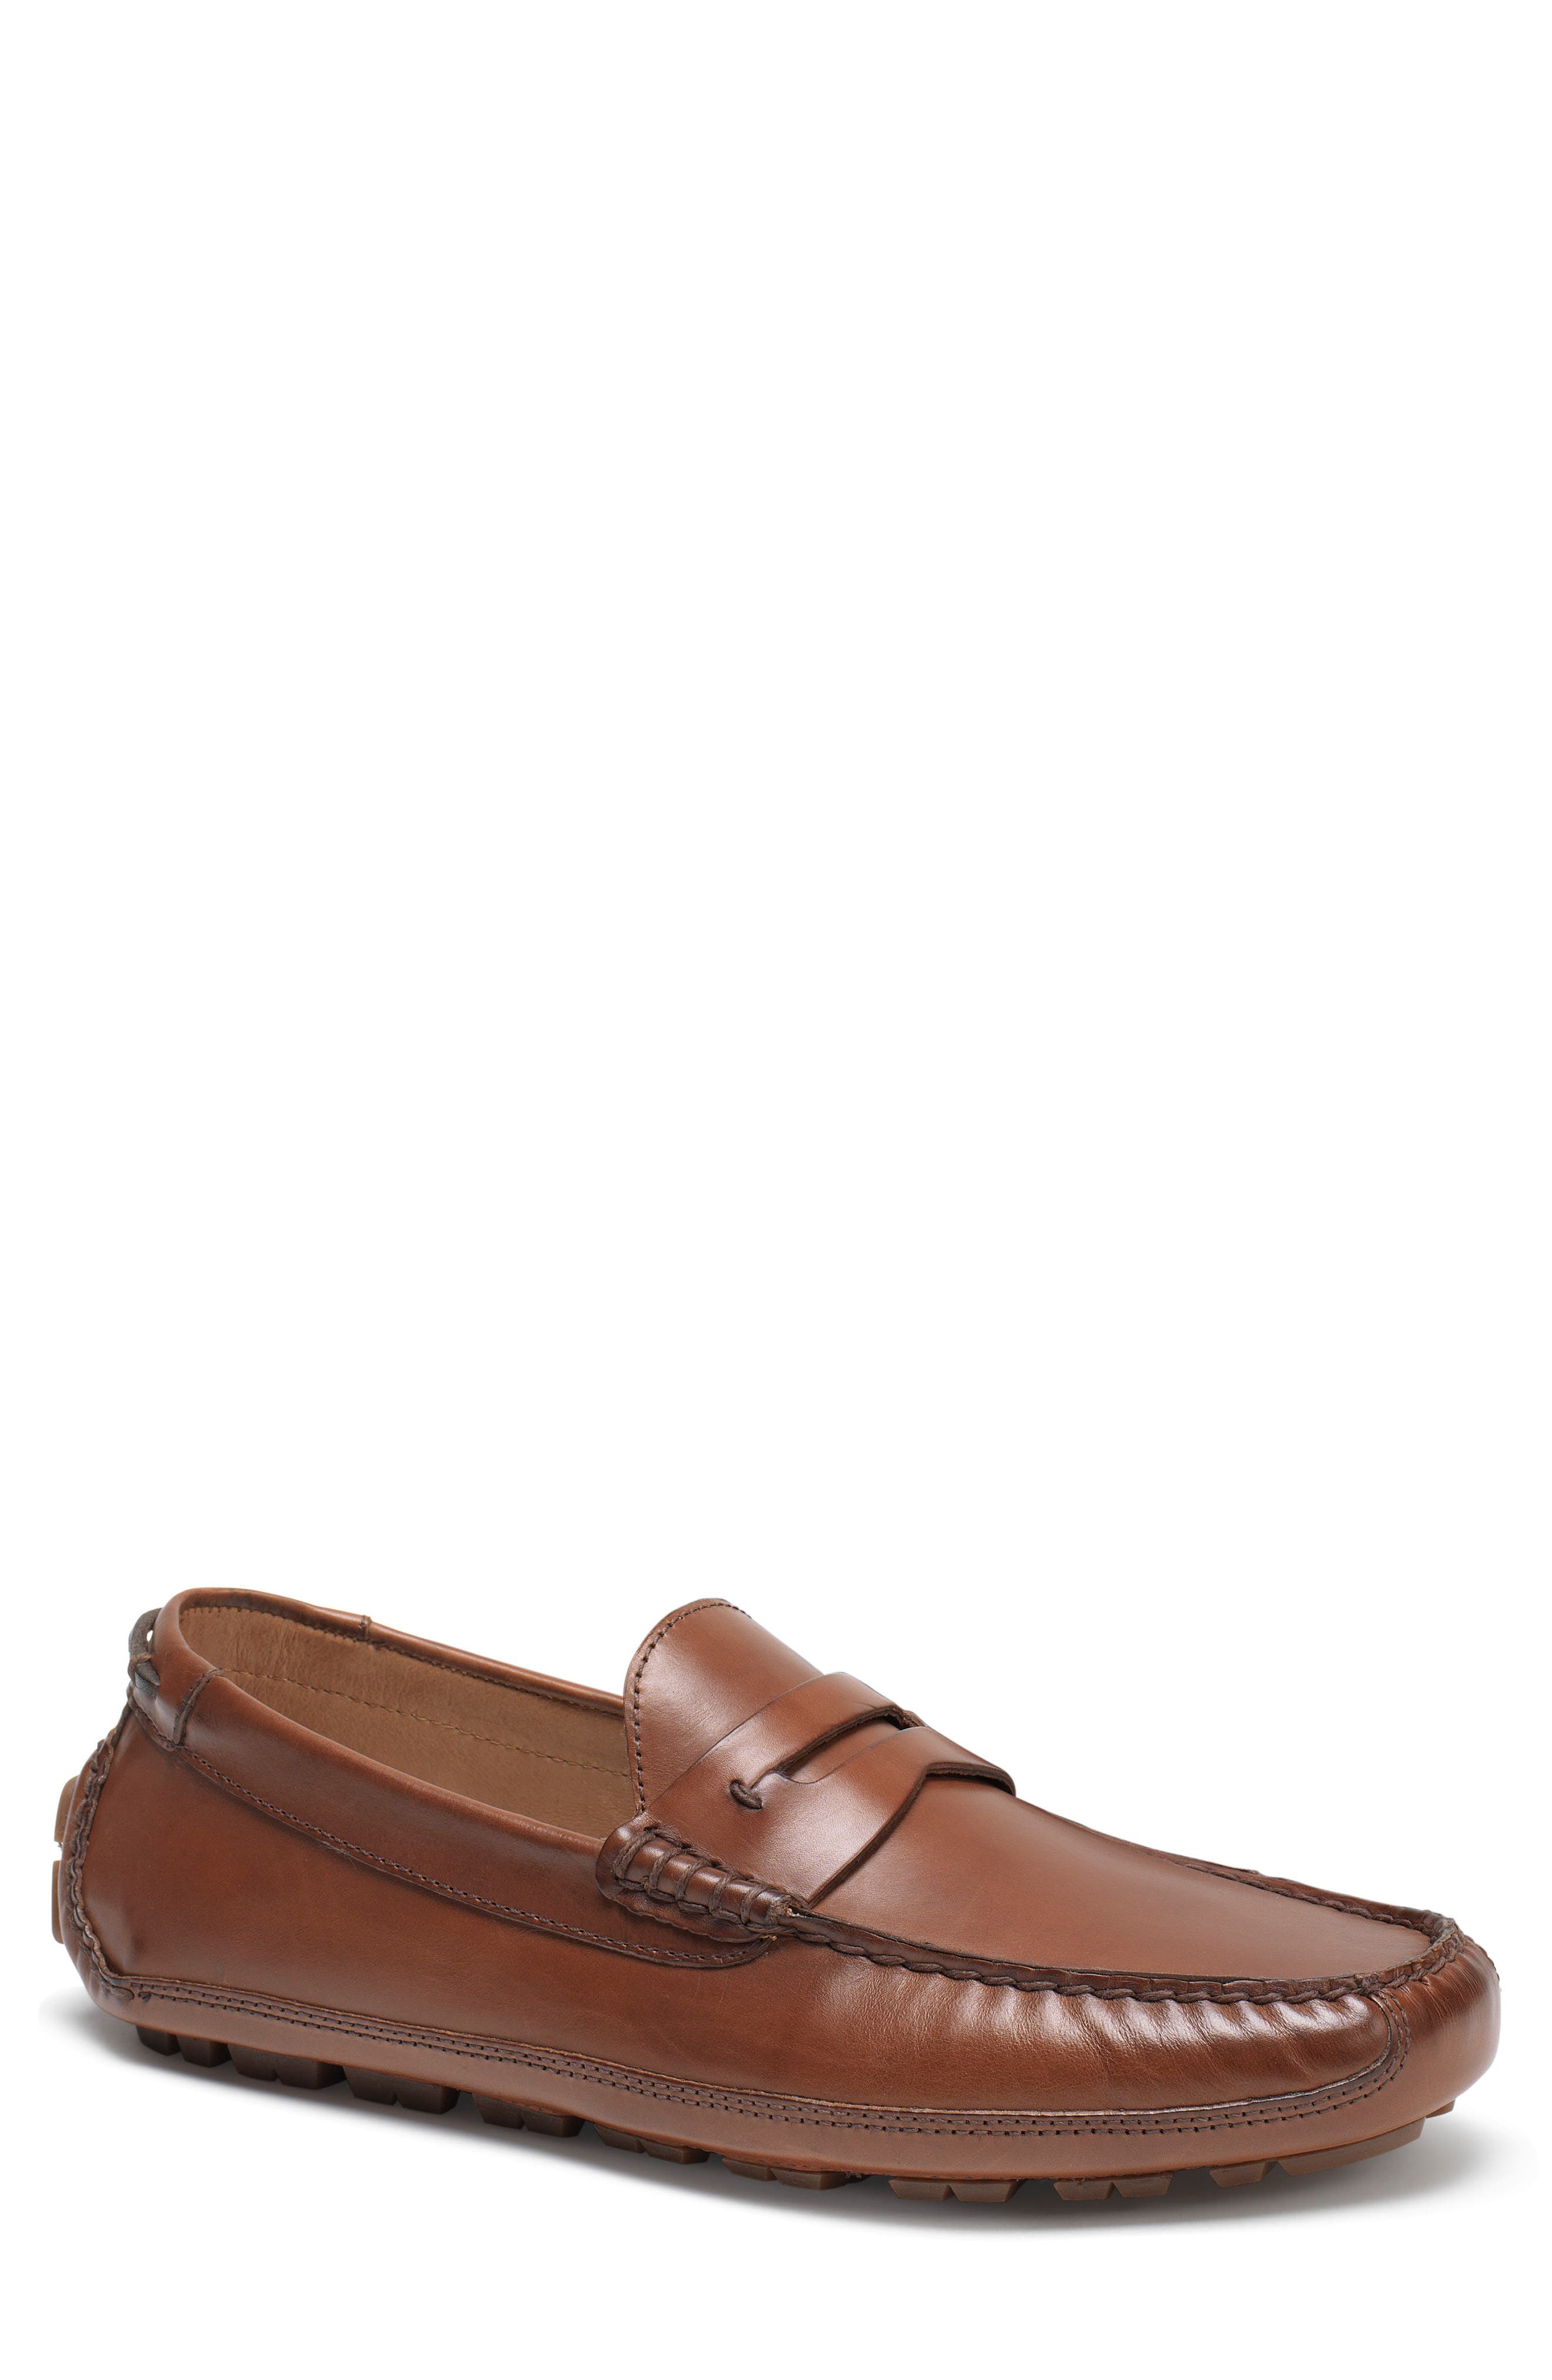 Dawson Water Resistant Driving Loafer,                             Main thumbnail 1, color,                             Light Brown Leather